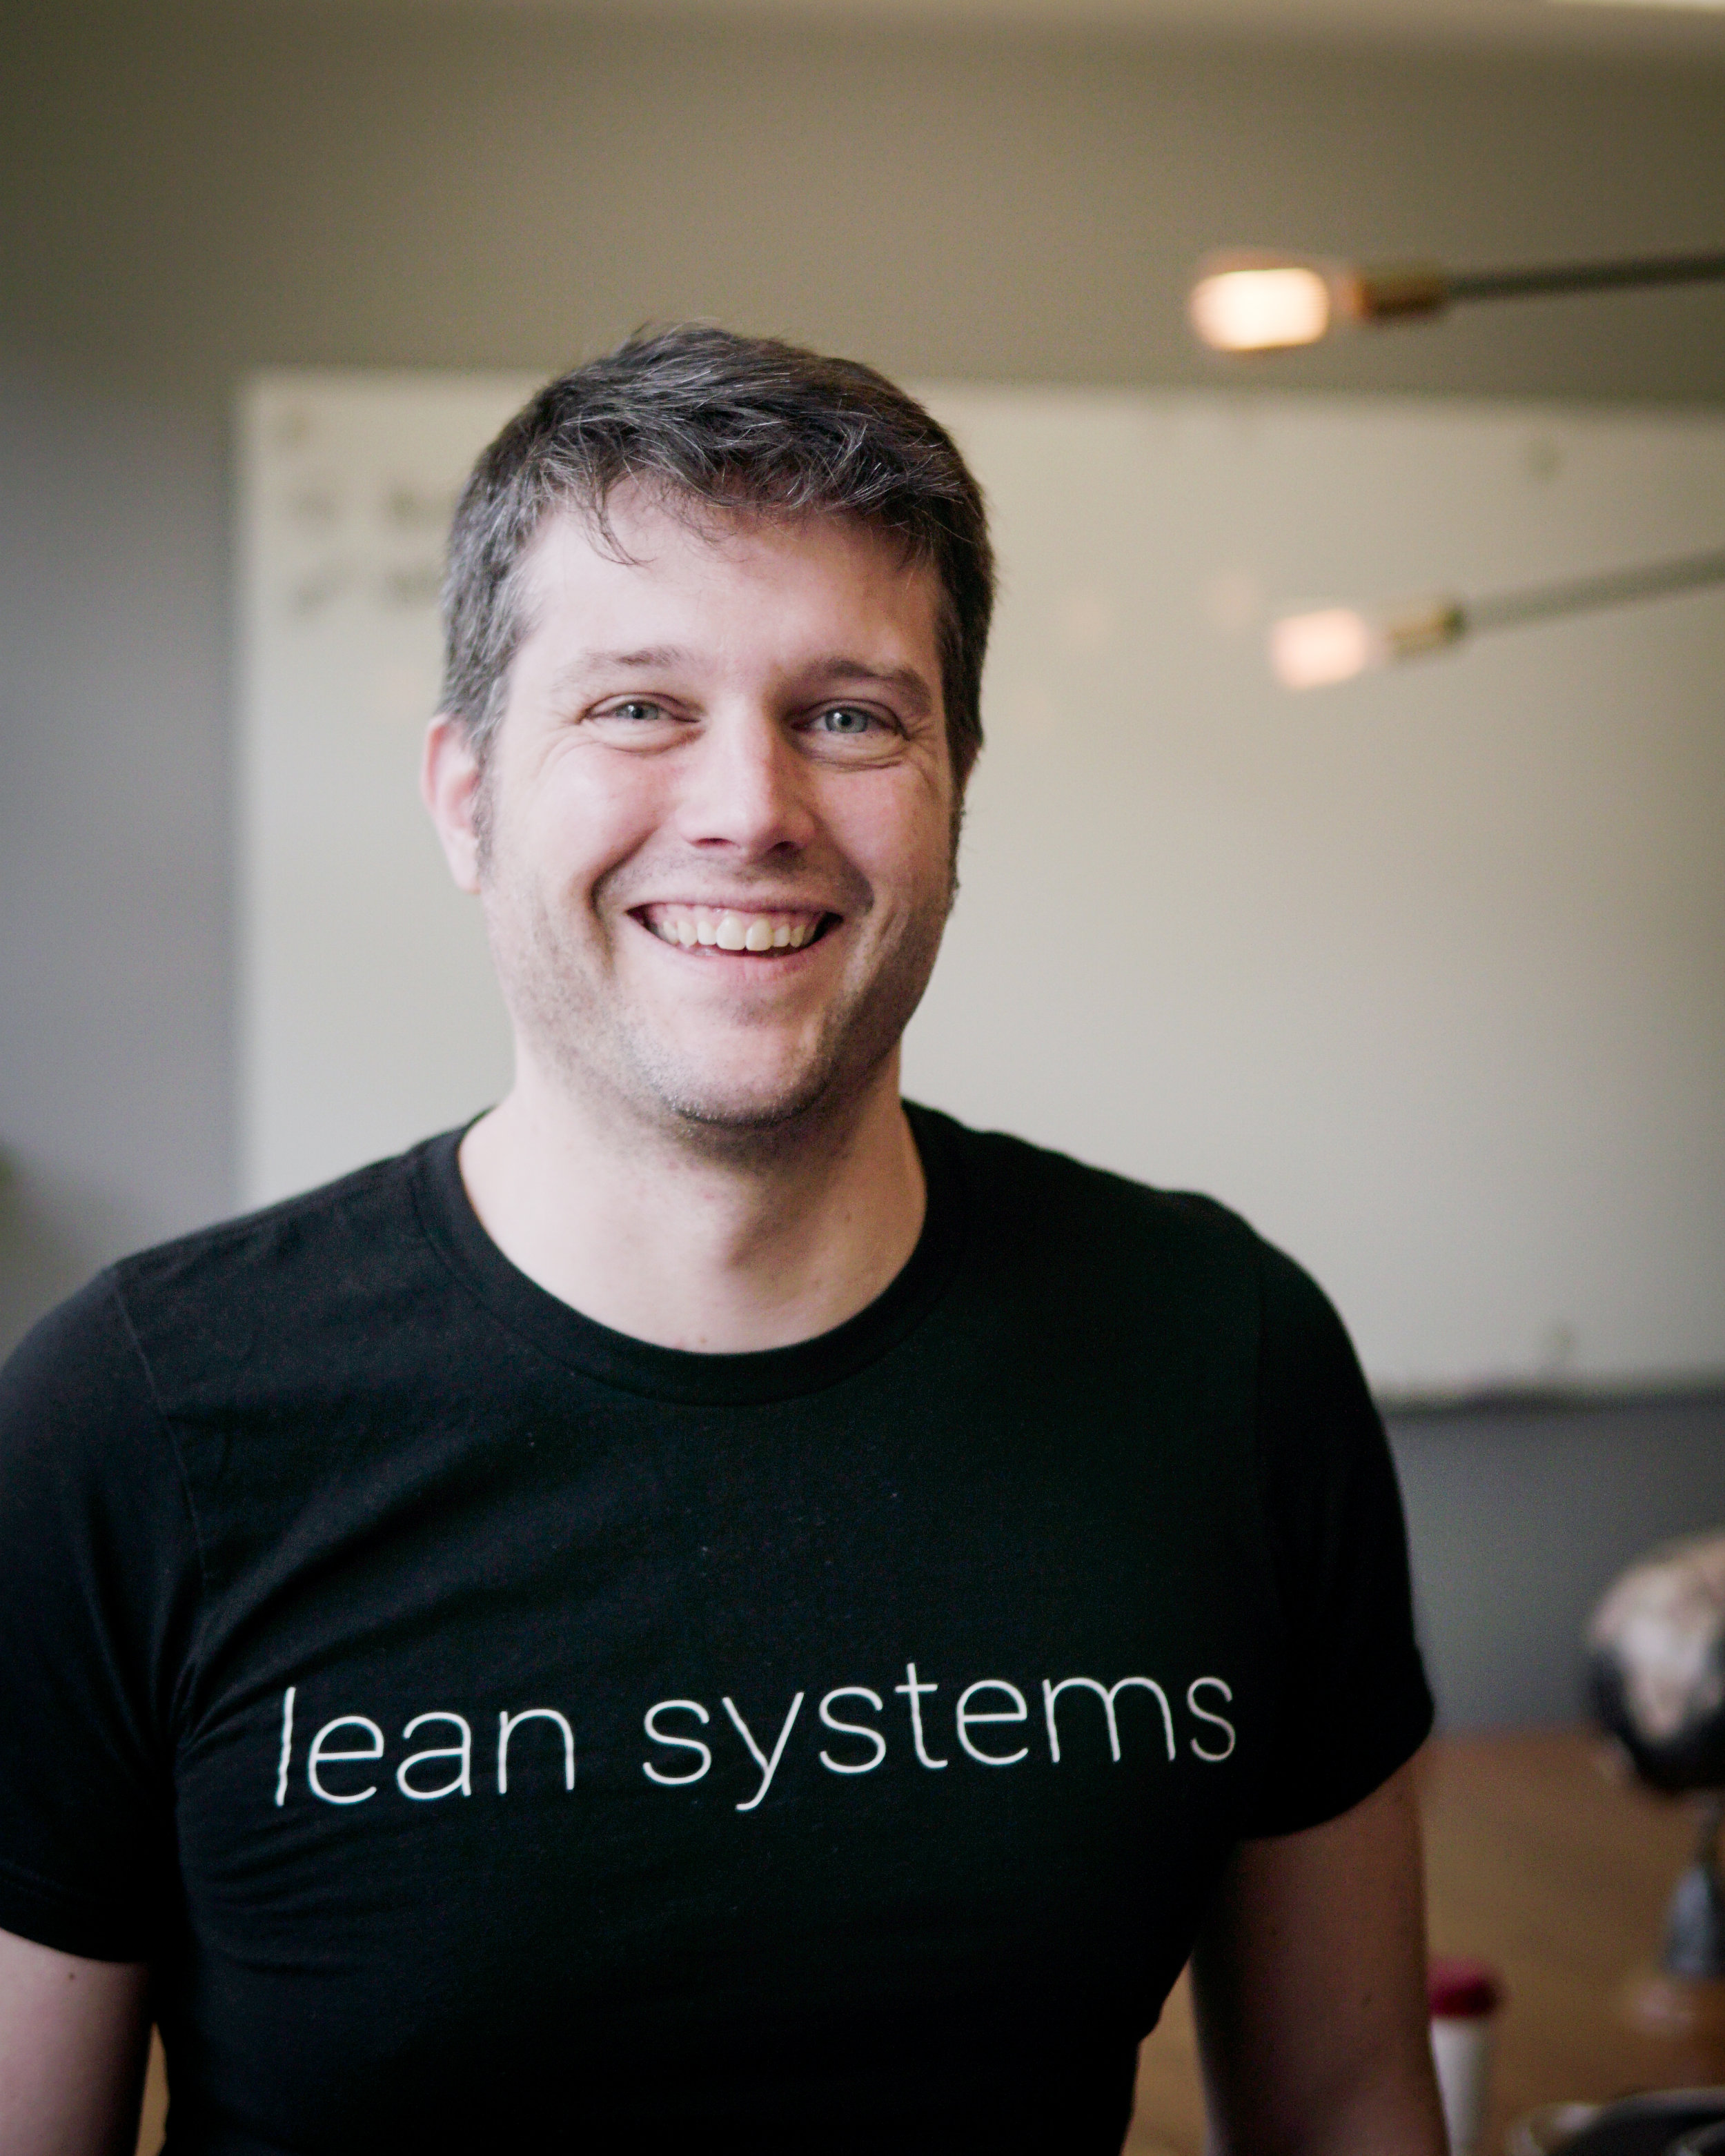 sebastien-roy-lean-systems